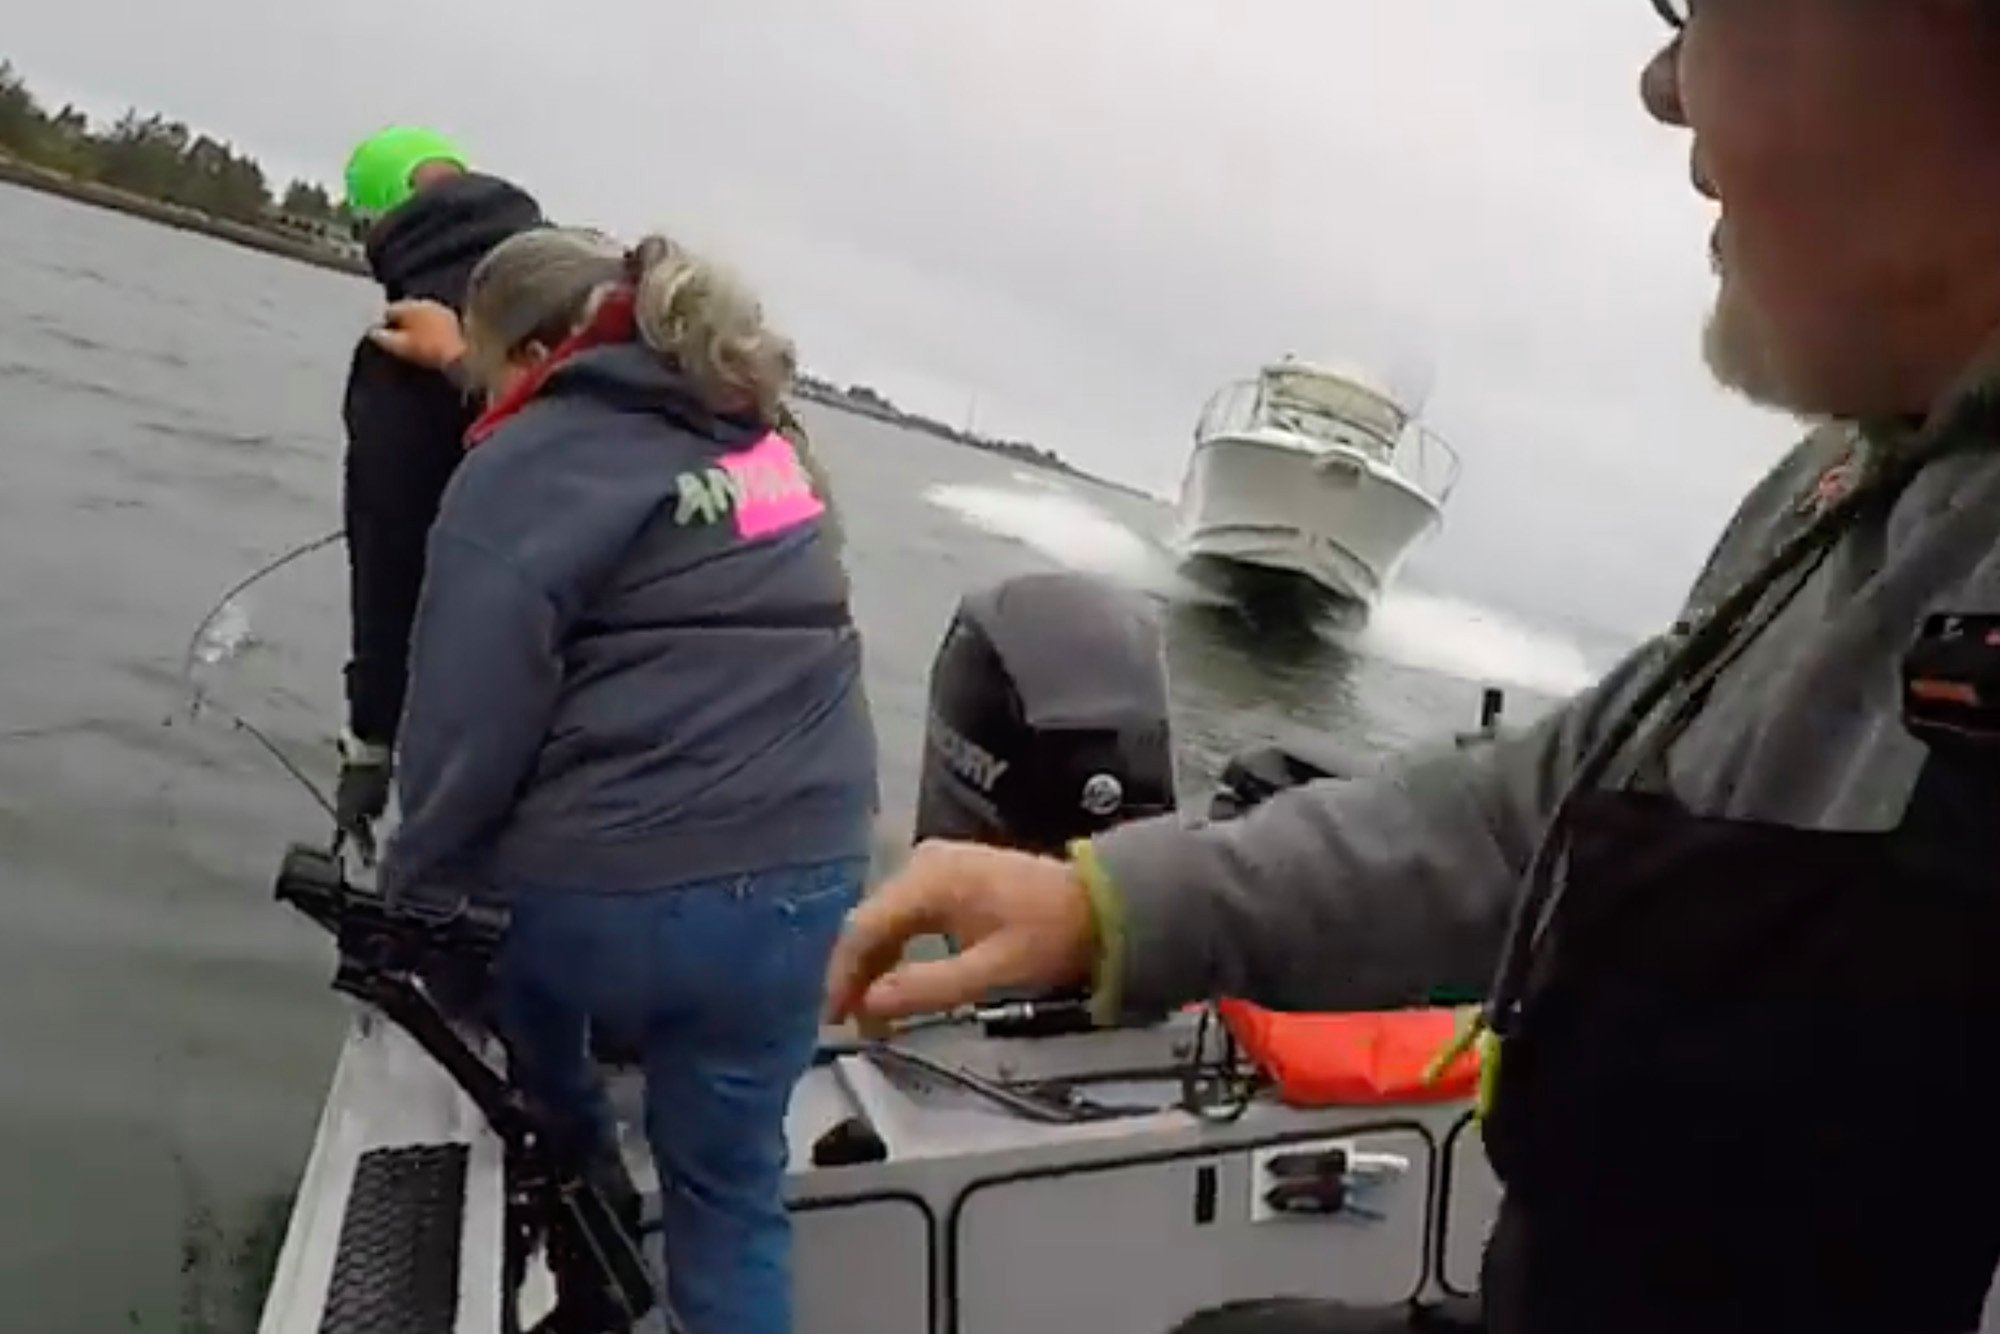 Fisherman sues after dramatic boat crash caught on video